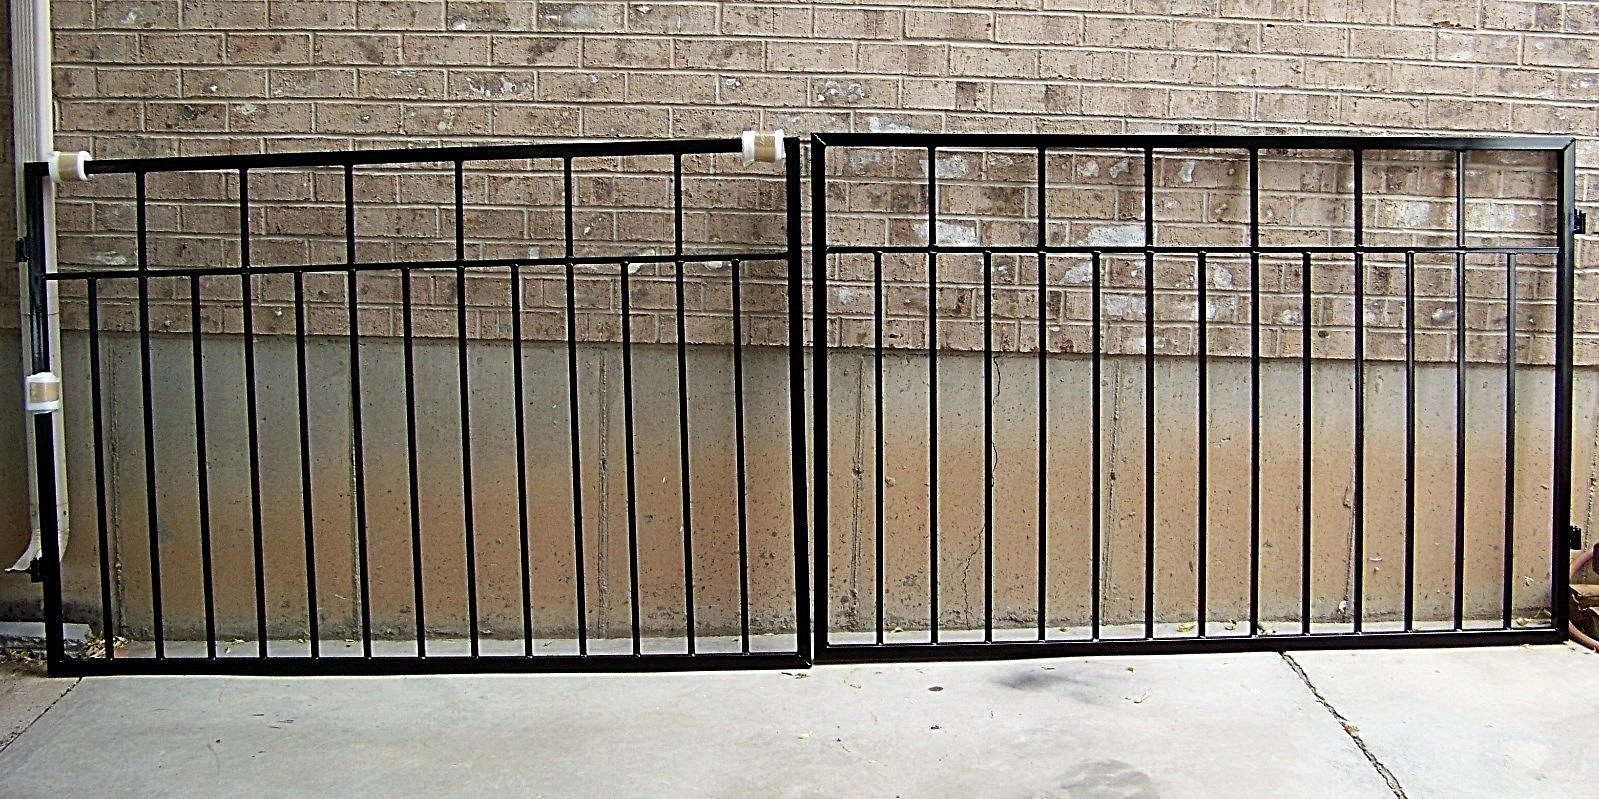 Garden Gates 139948 Driveway Gate 10 Foot Wide 4 High Double Swing Special Price Buy It Now Only 959 On Ebay Ga Driveway Gate Double Swing Garden Gates